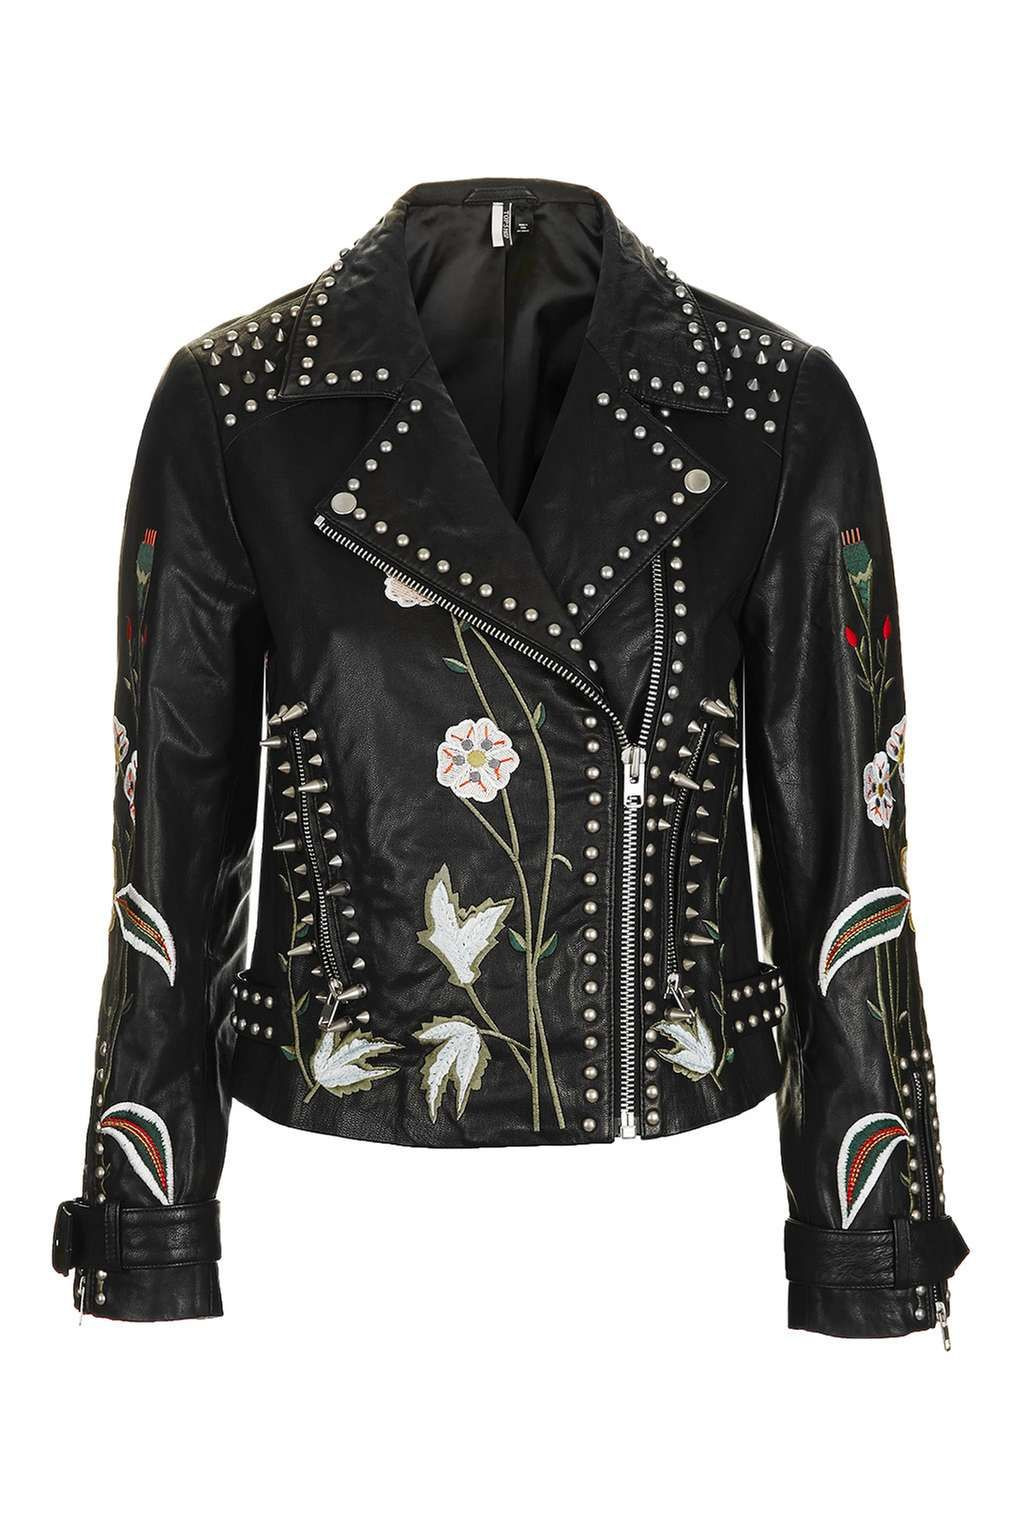 Flower embroidered jacket coat PU Motorcycle jackets for women